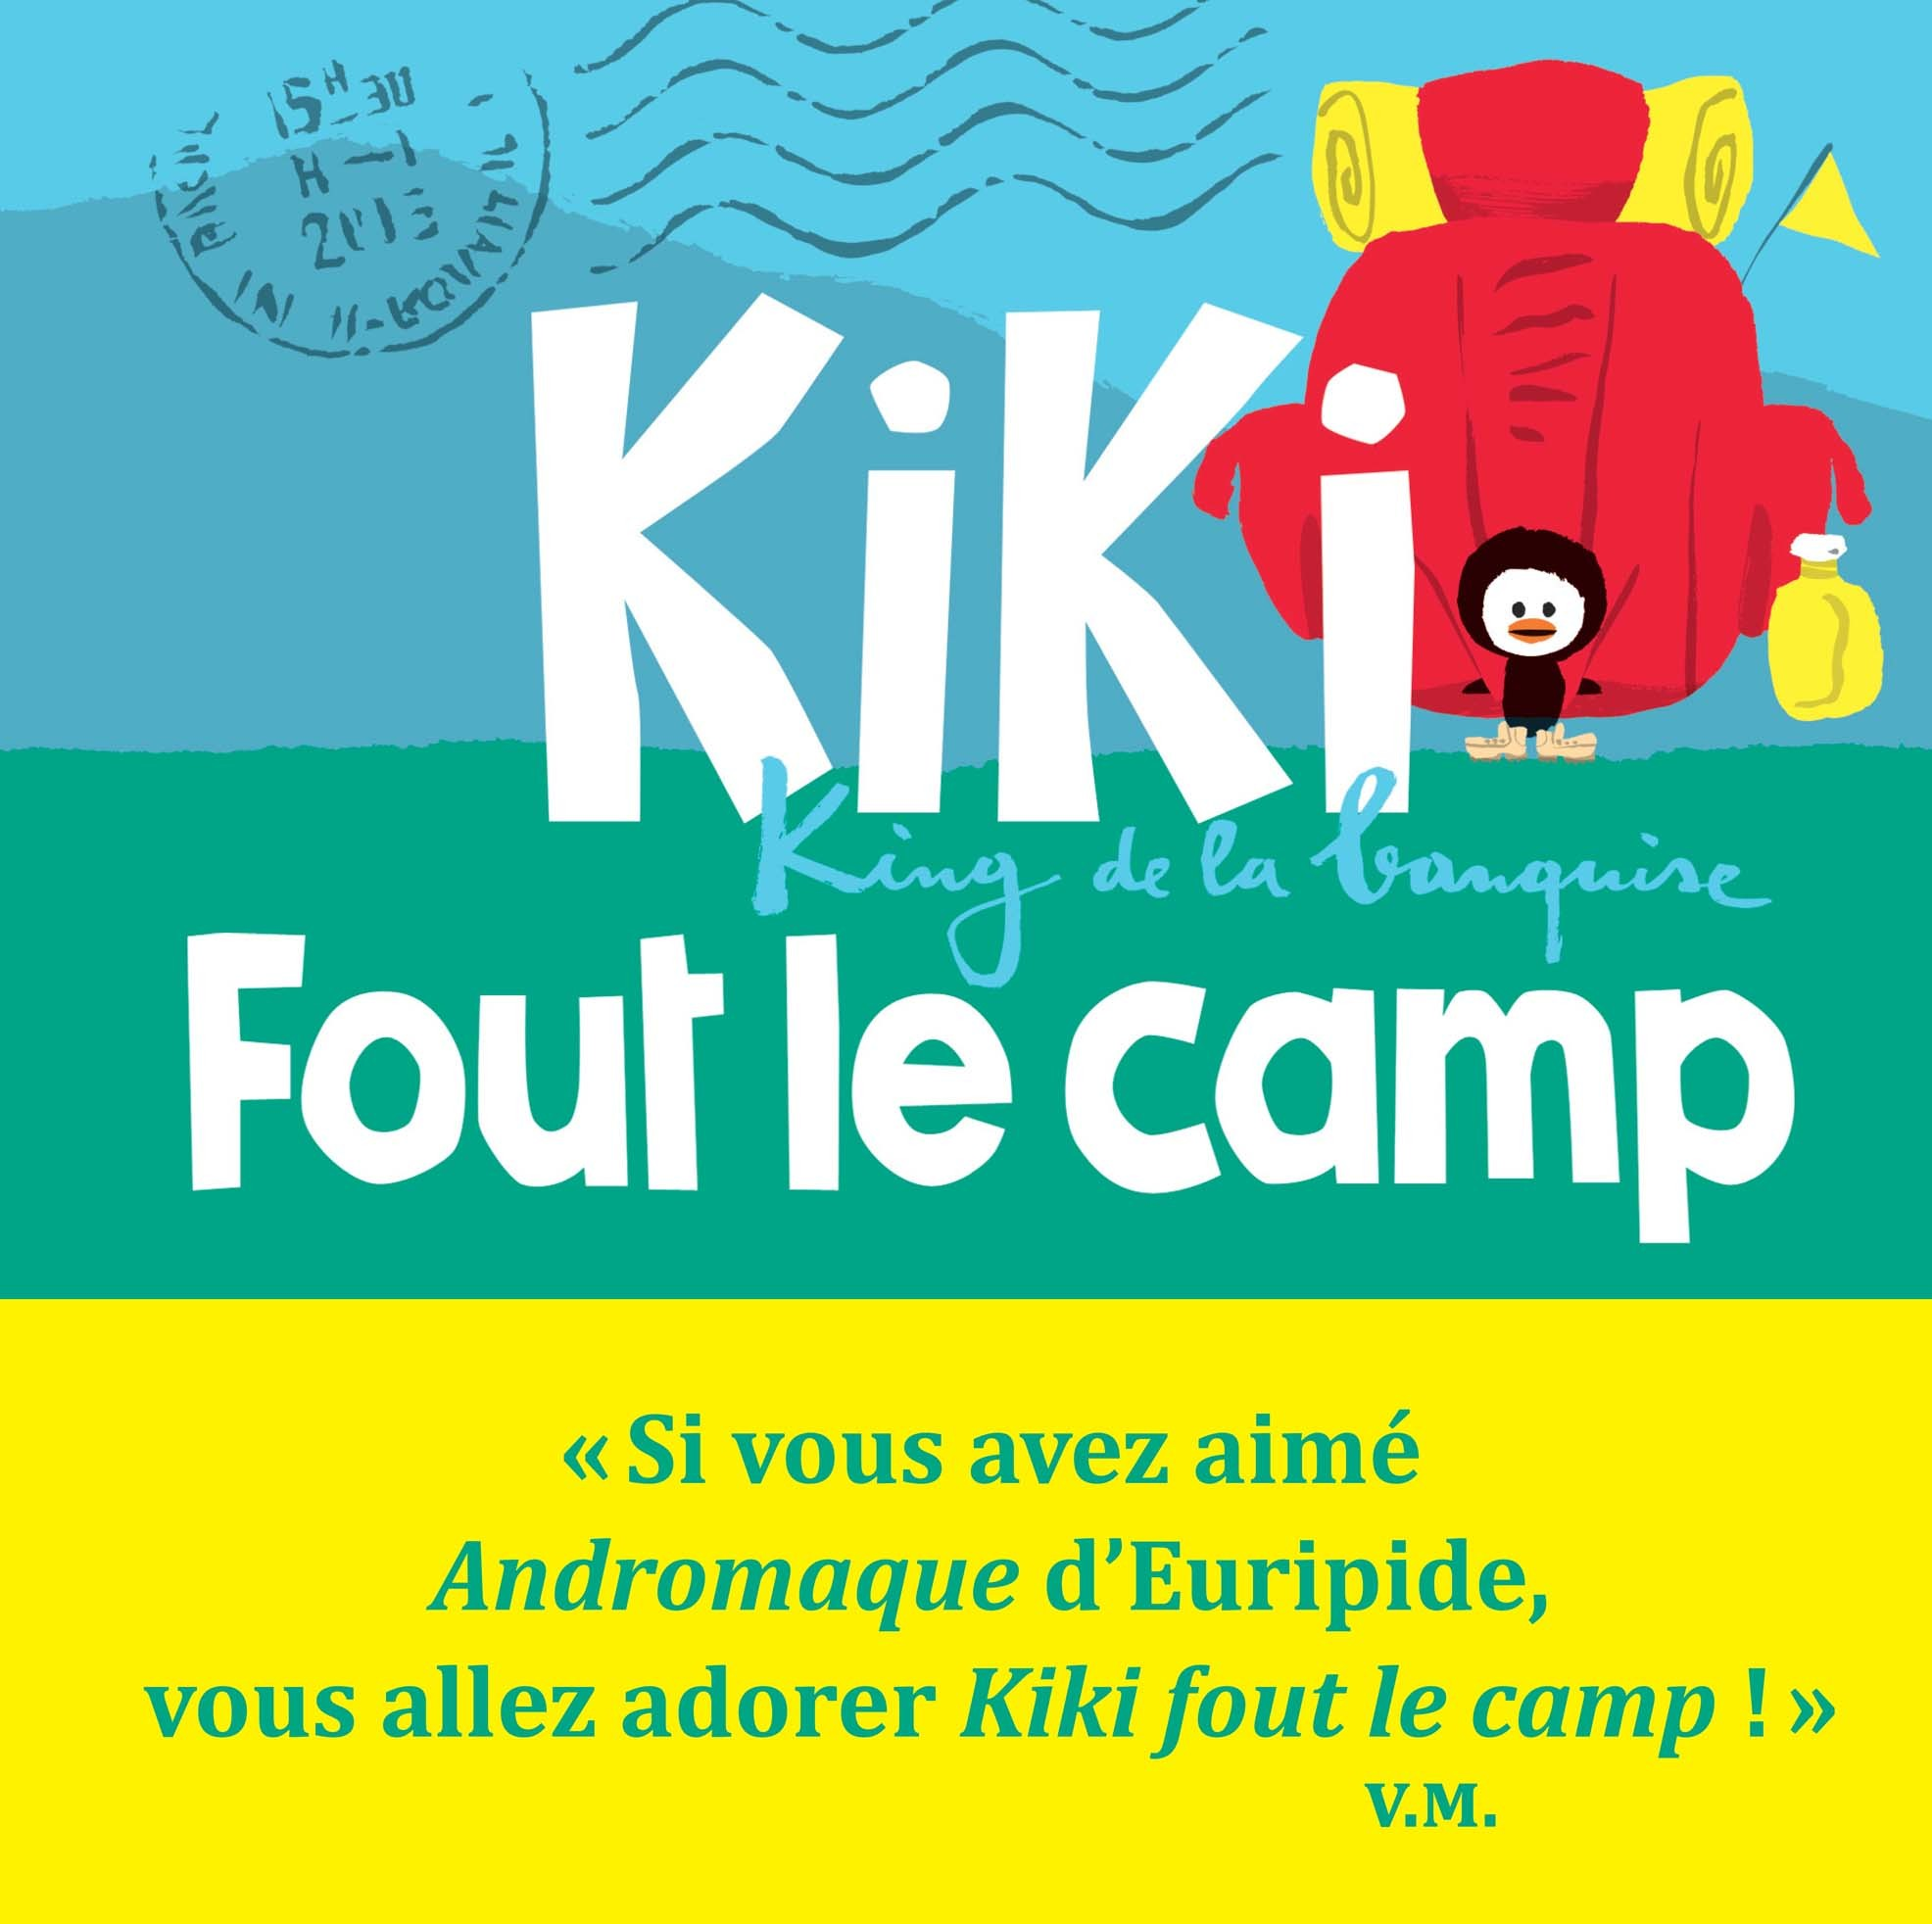 KIKI FOUT LE CAMP